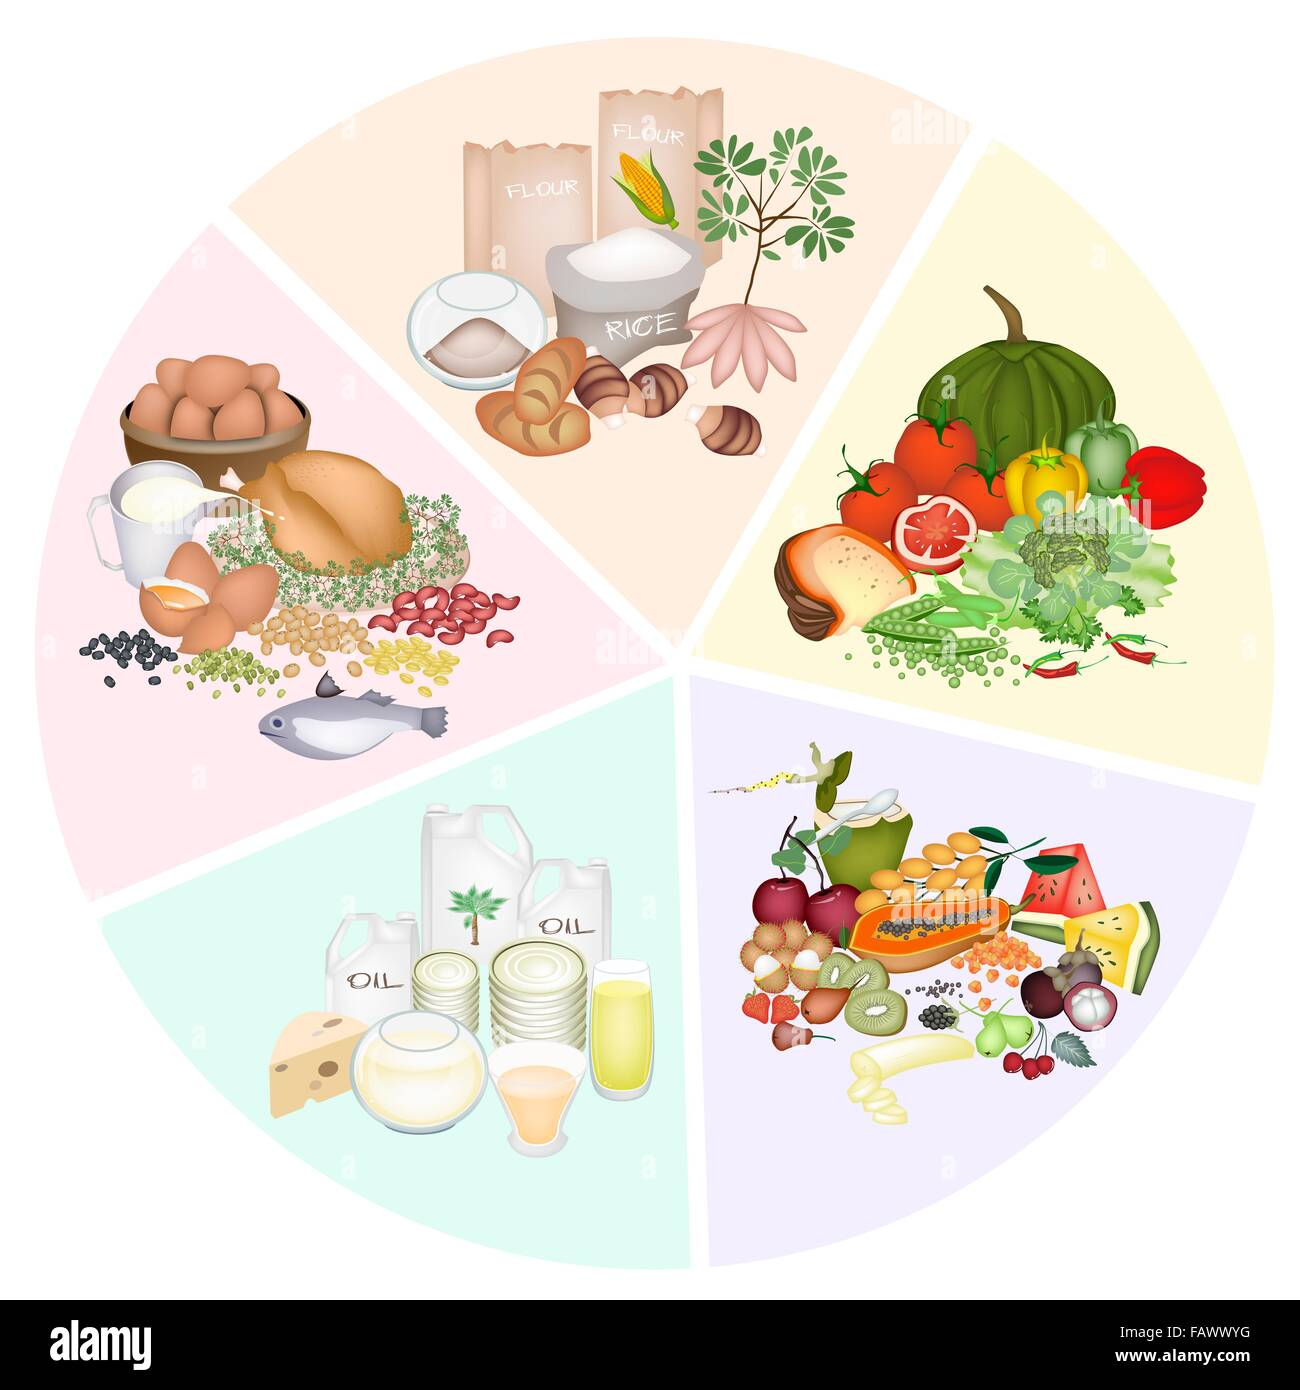 A pie chart of food groups for carbohydrate protein fat vitamin a pie chart of food groups for carbohydrate protein fat vitamin and mineral to improve nutrient intake and health benefits nvjuhfo Gallery